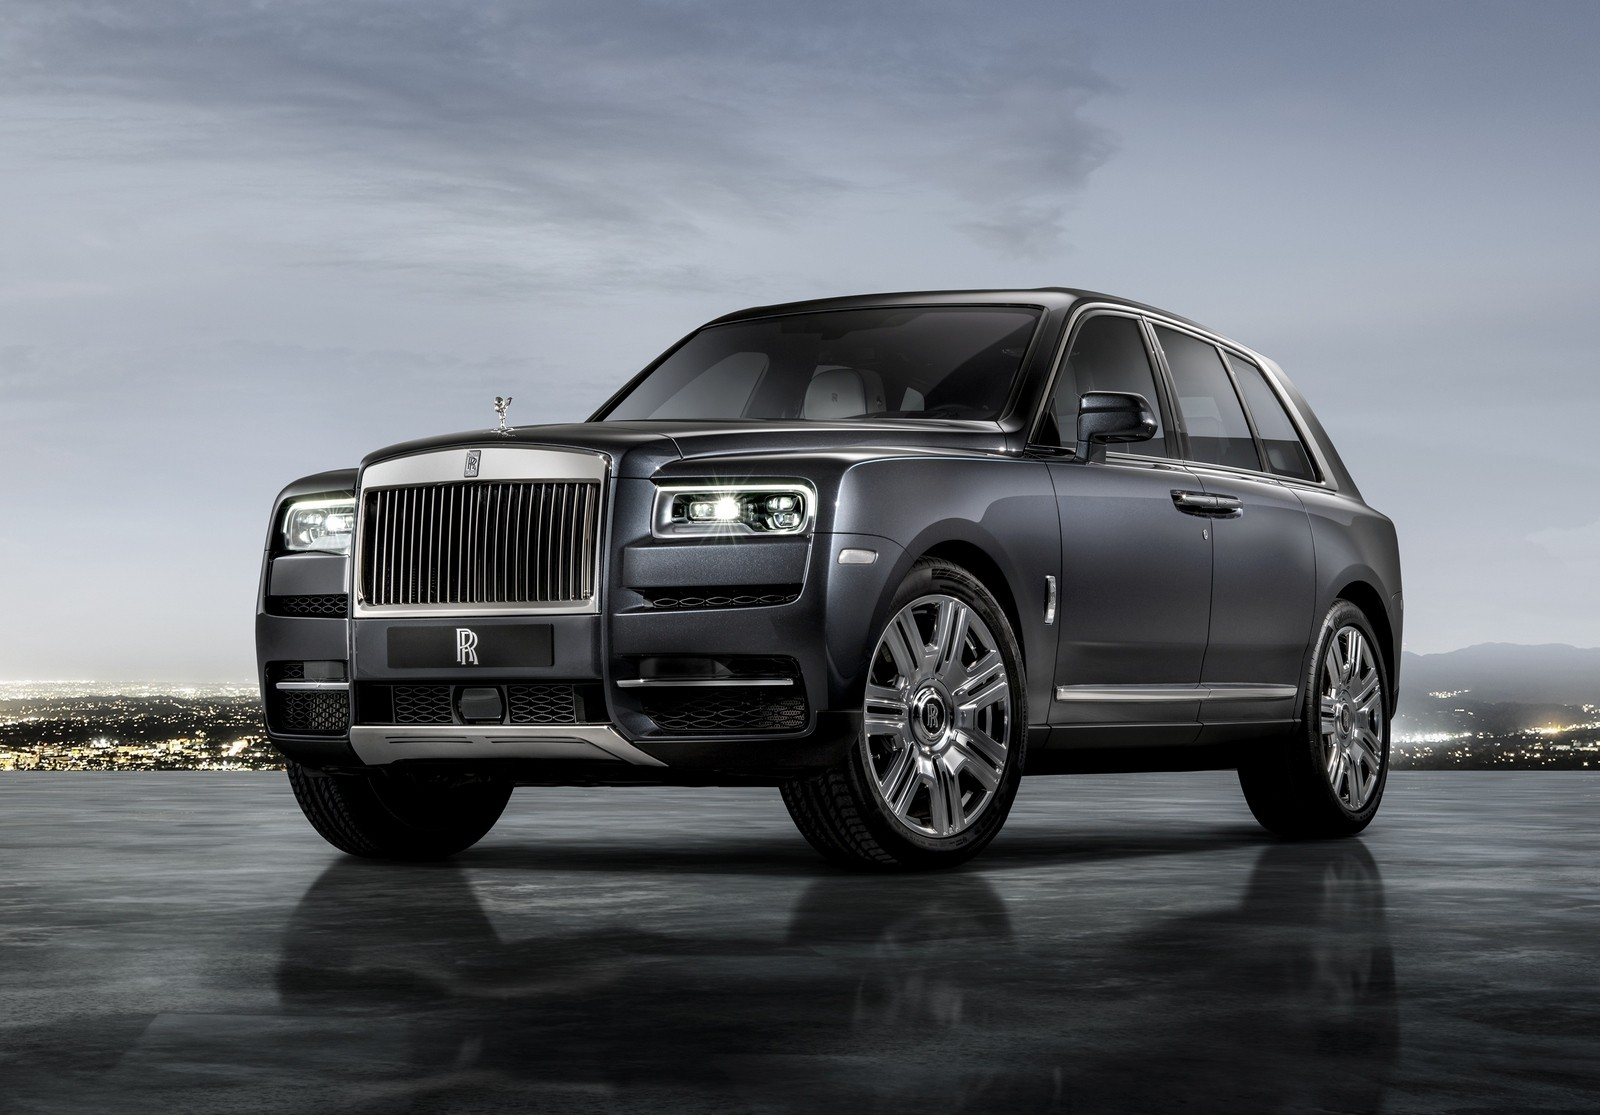 Recent rumors indicated that Rolls-Royce was busy developing a performance version of its Cullinan SUV. Now, multiple sources have reported what looks like the main specs of the alleged Cullinan Black Badge.